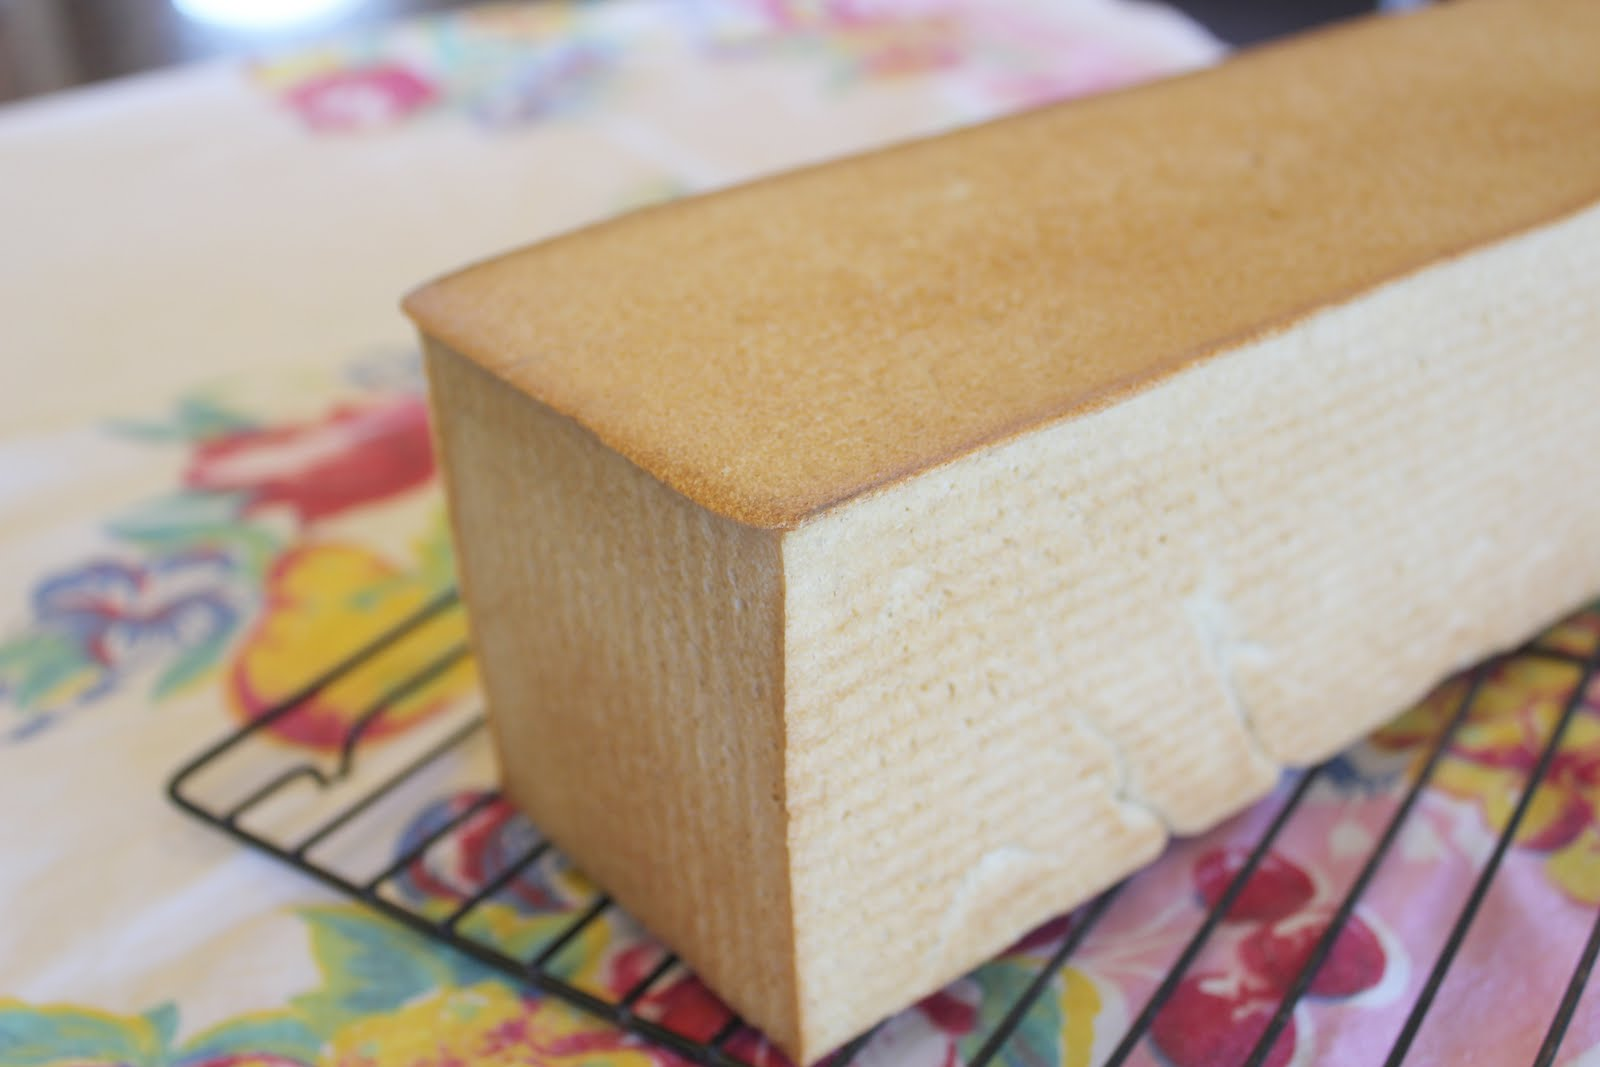 When sliced, they make a perfect square sandwich bread. Great for